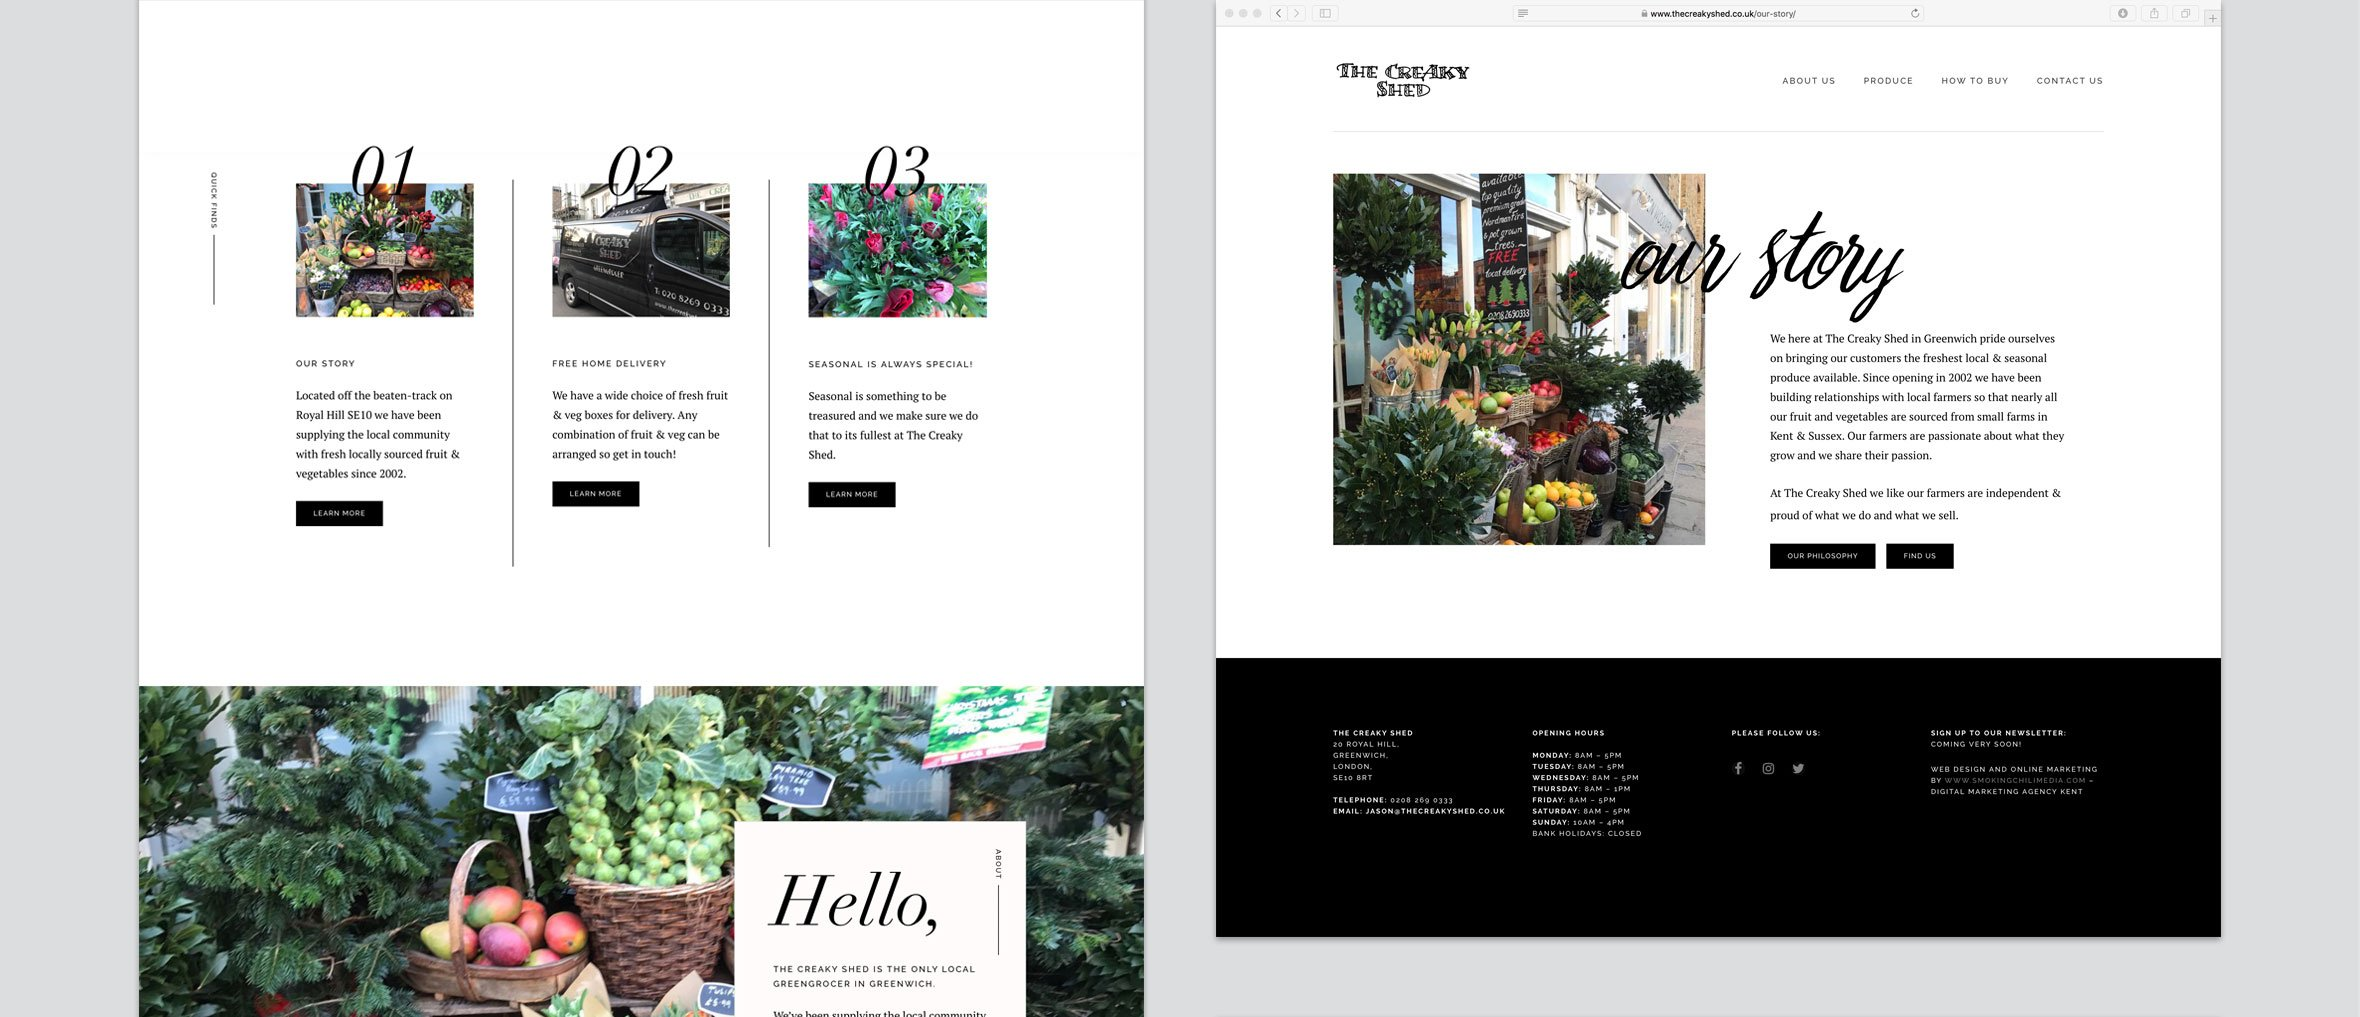 The Creaky Shed Website Design